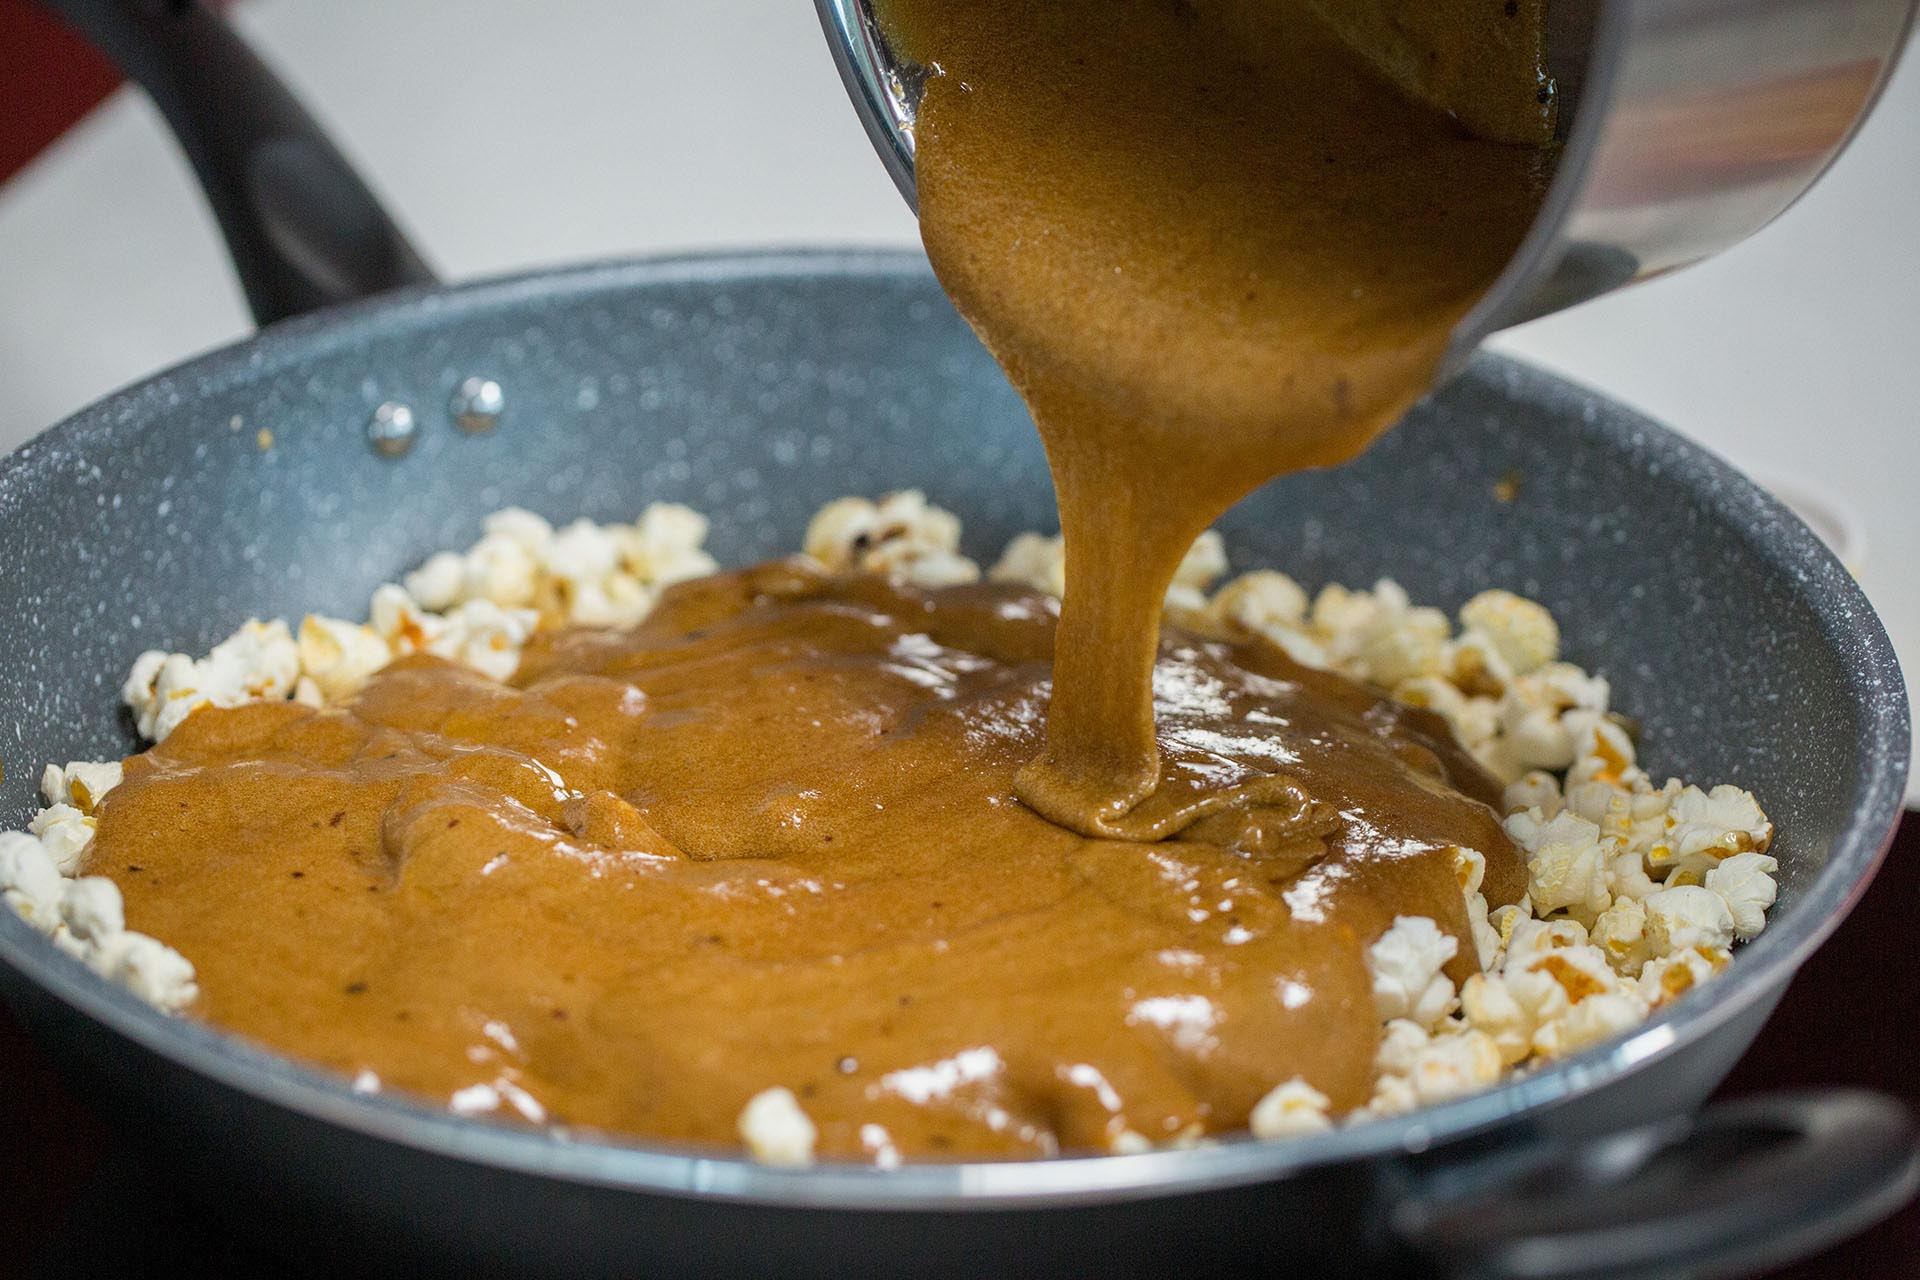 Making caramel mala sauce